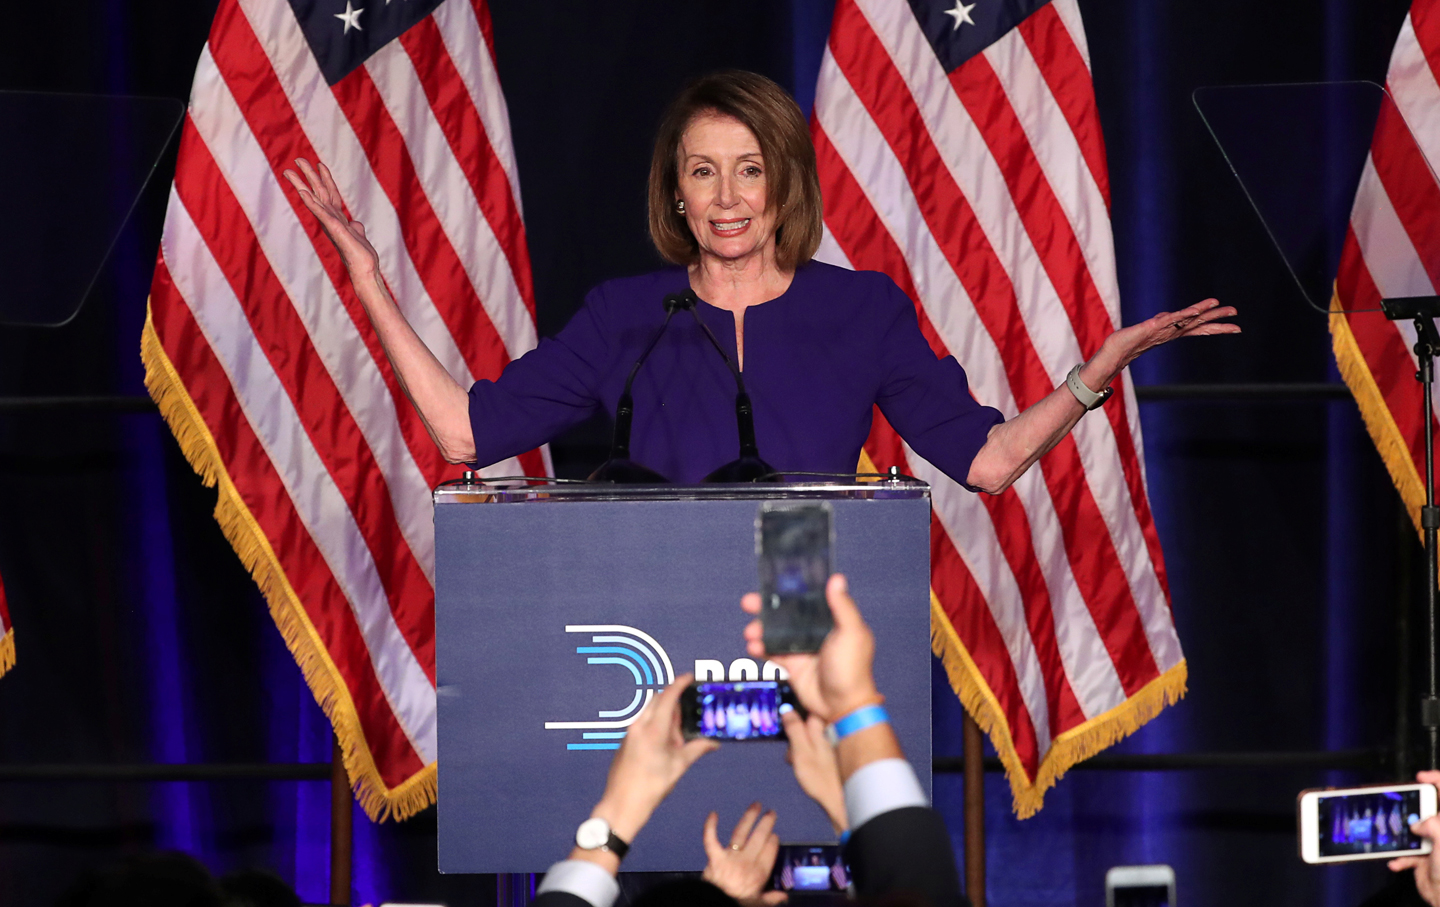 Nancy-Pelosi-Midterms-2018-rtr-img